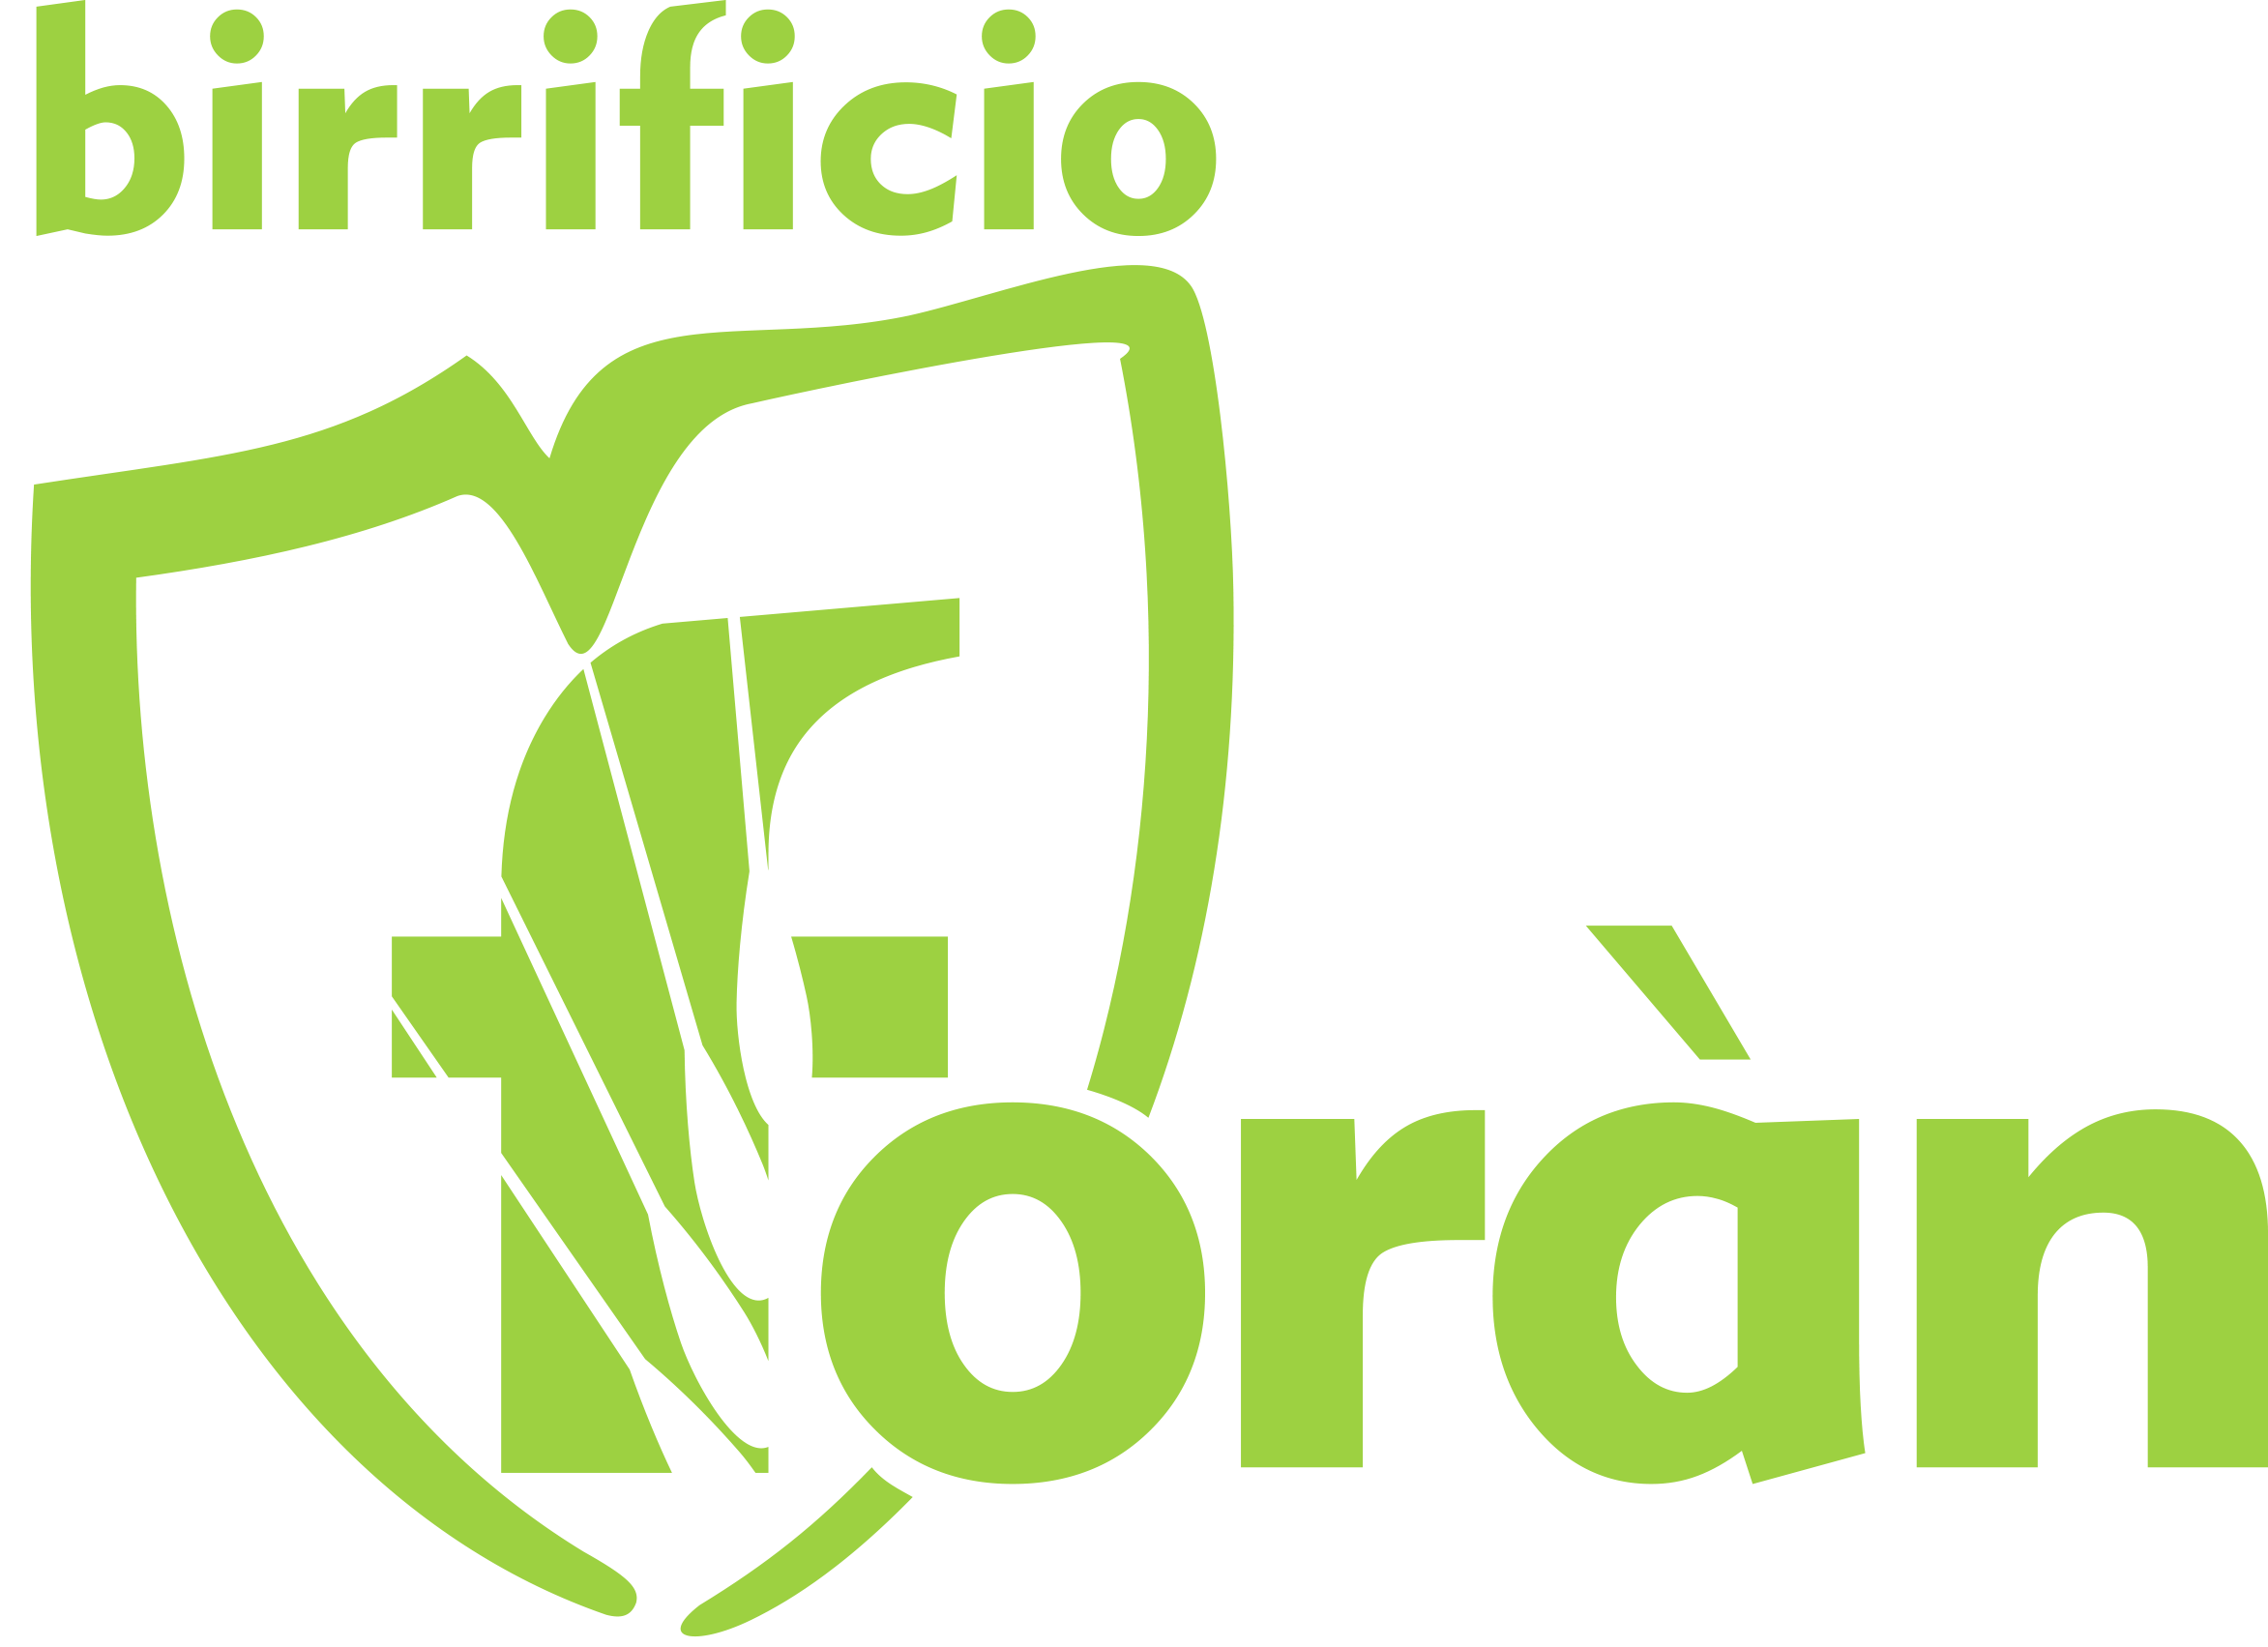 Birrificio Foran